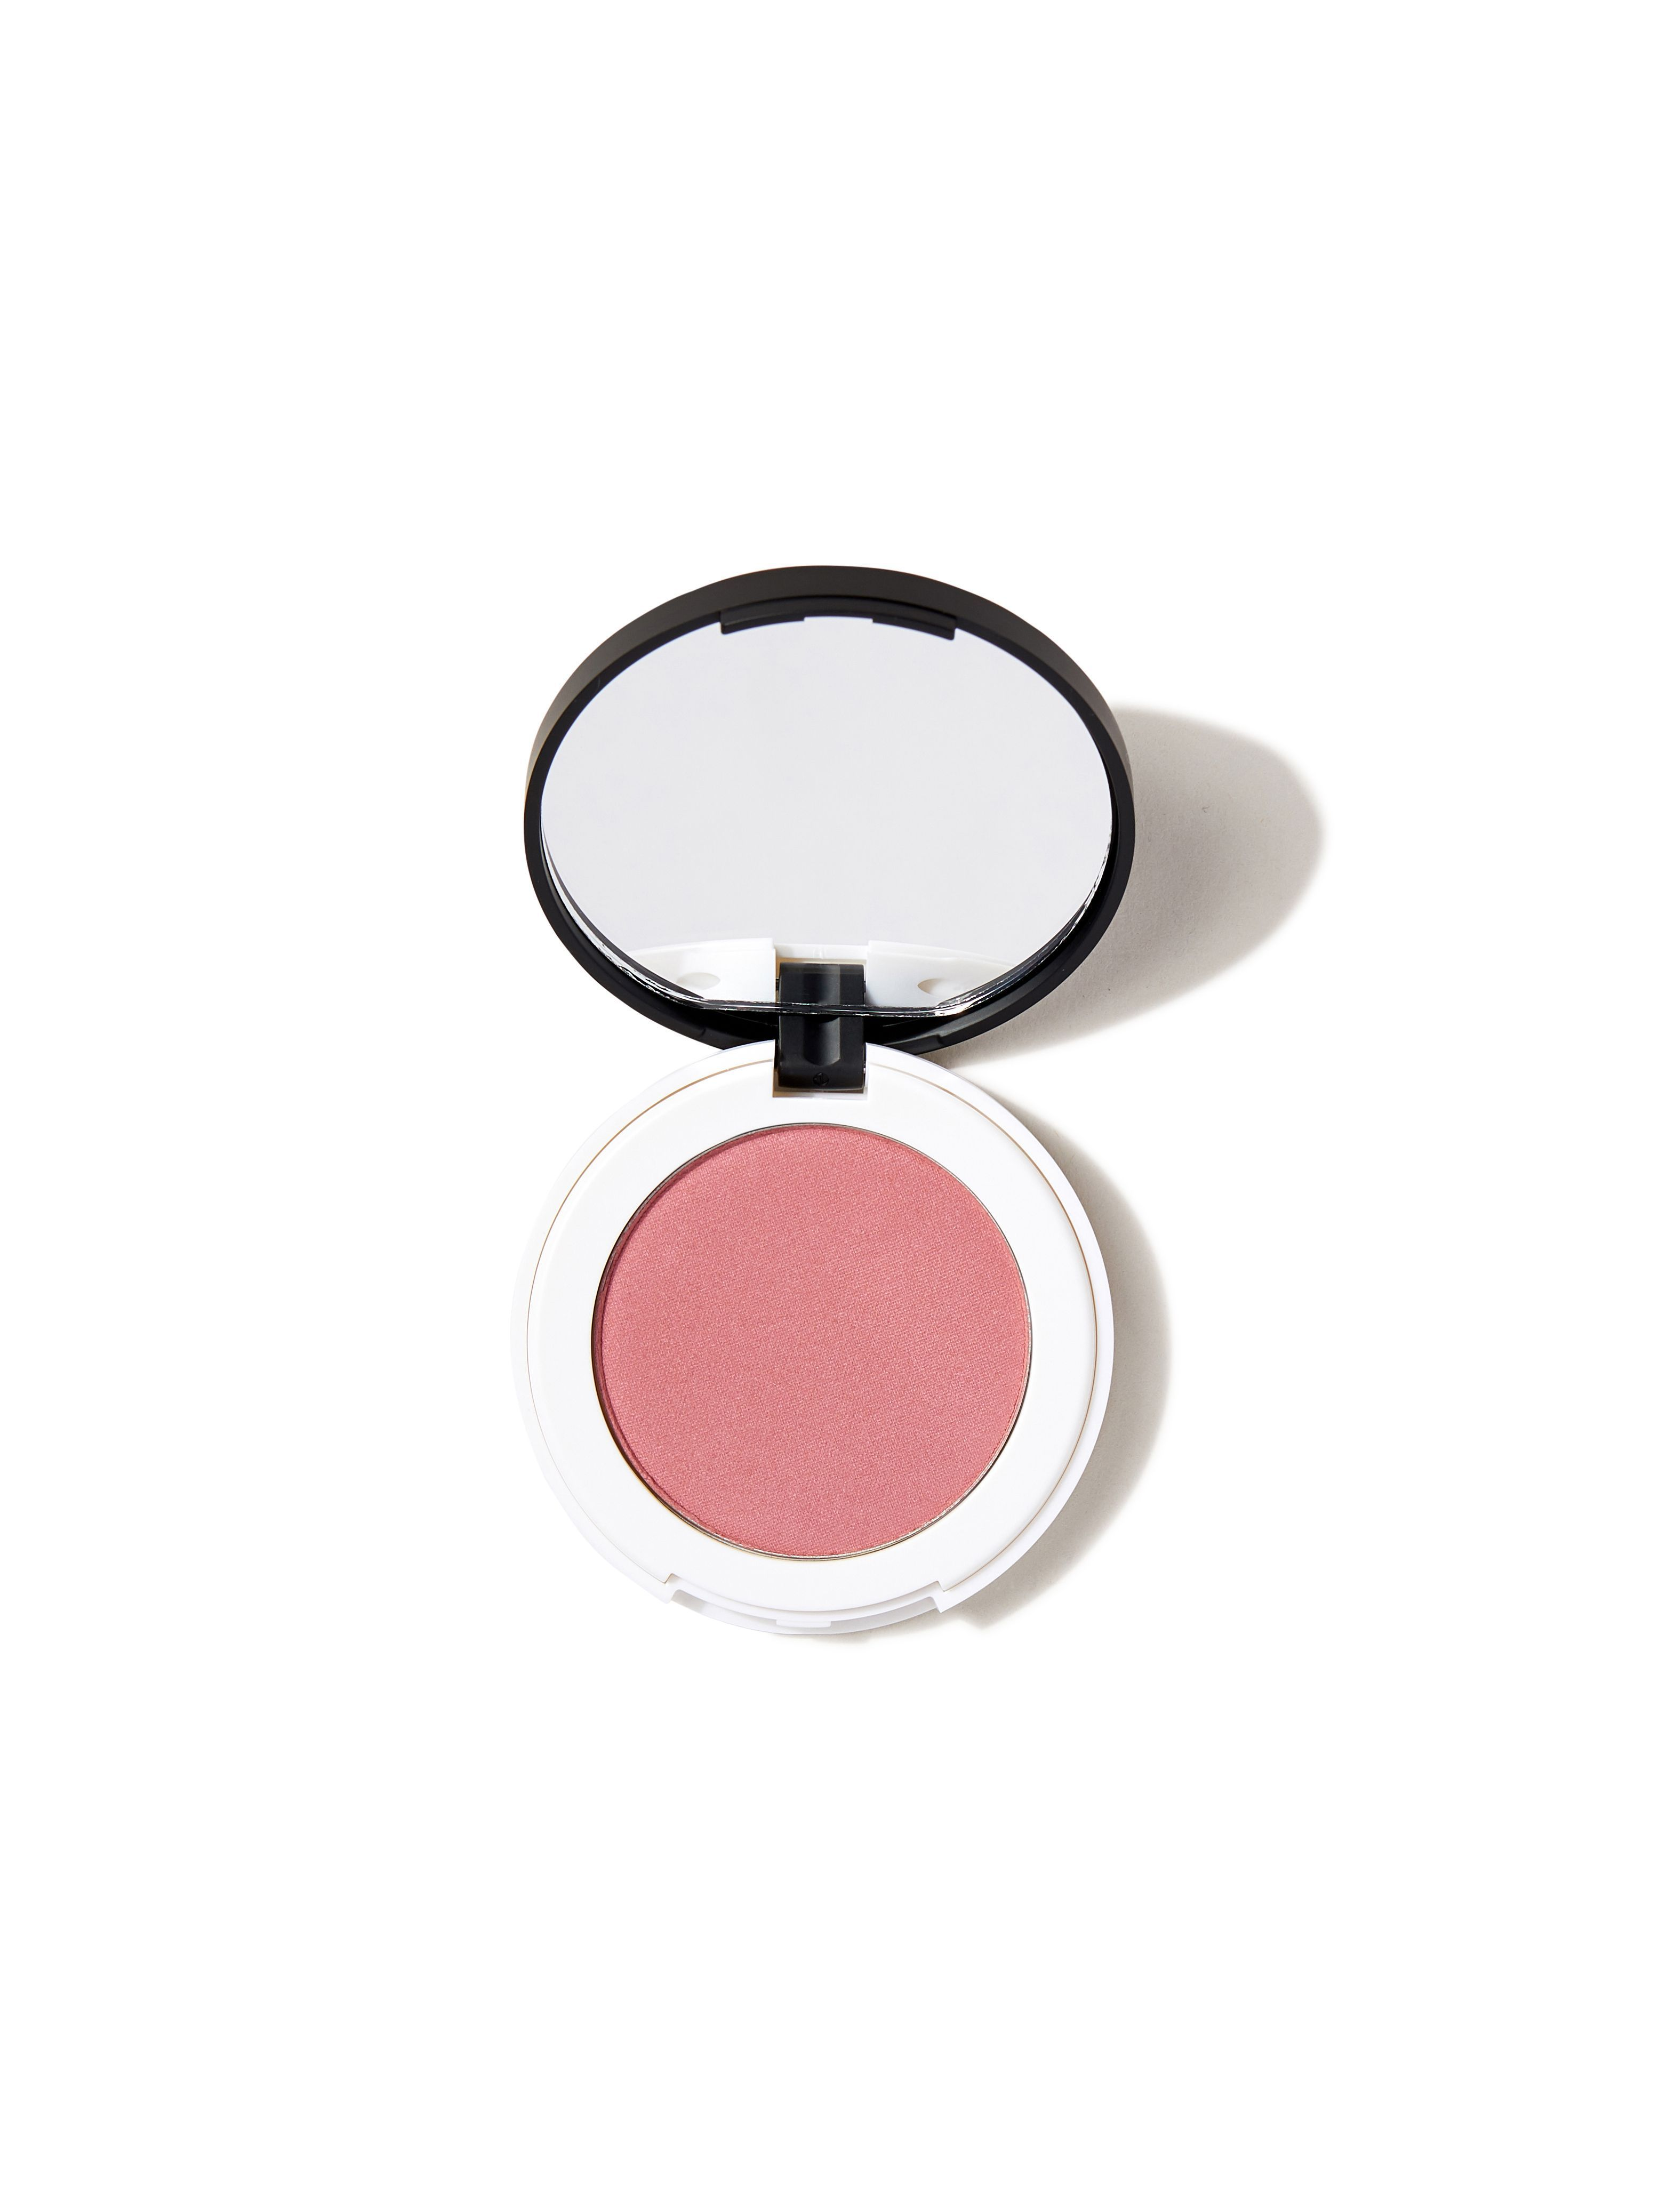 Lily Lolo Pressed Blush - Leife S A Peach #lilylolo Lily Lolo Pressed Blush - In The Pink #lilylolo Lily Lolo Pressed Blush - Leife S A Peach #lilylolo Lily Lolo Pressed Blush - In The Pink #lilylolo